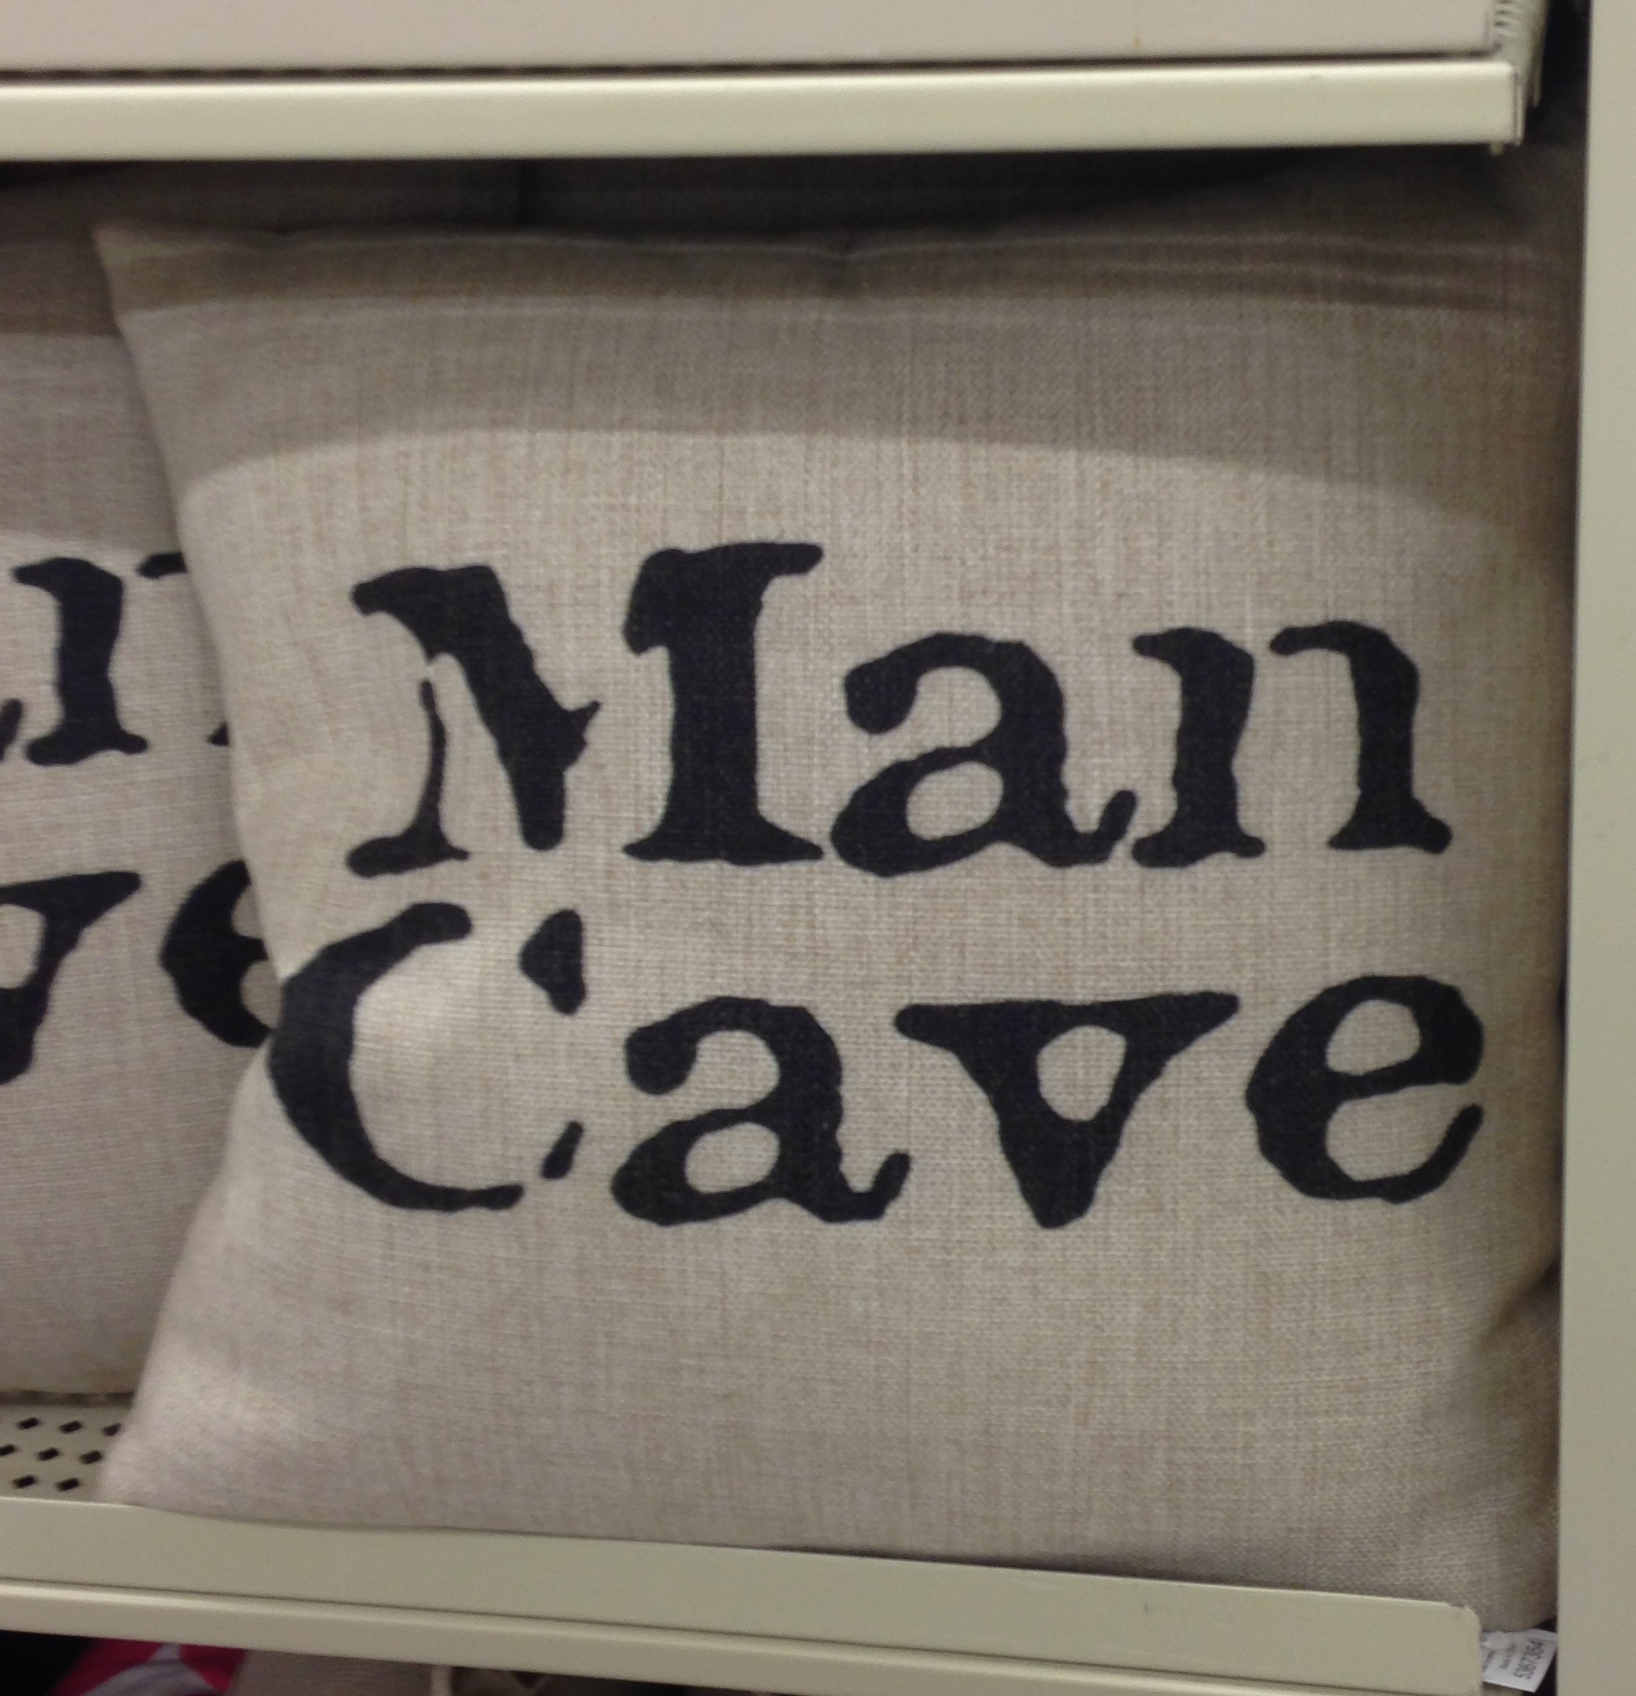 The Man Cave Throw Pillow paradox